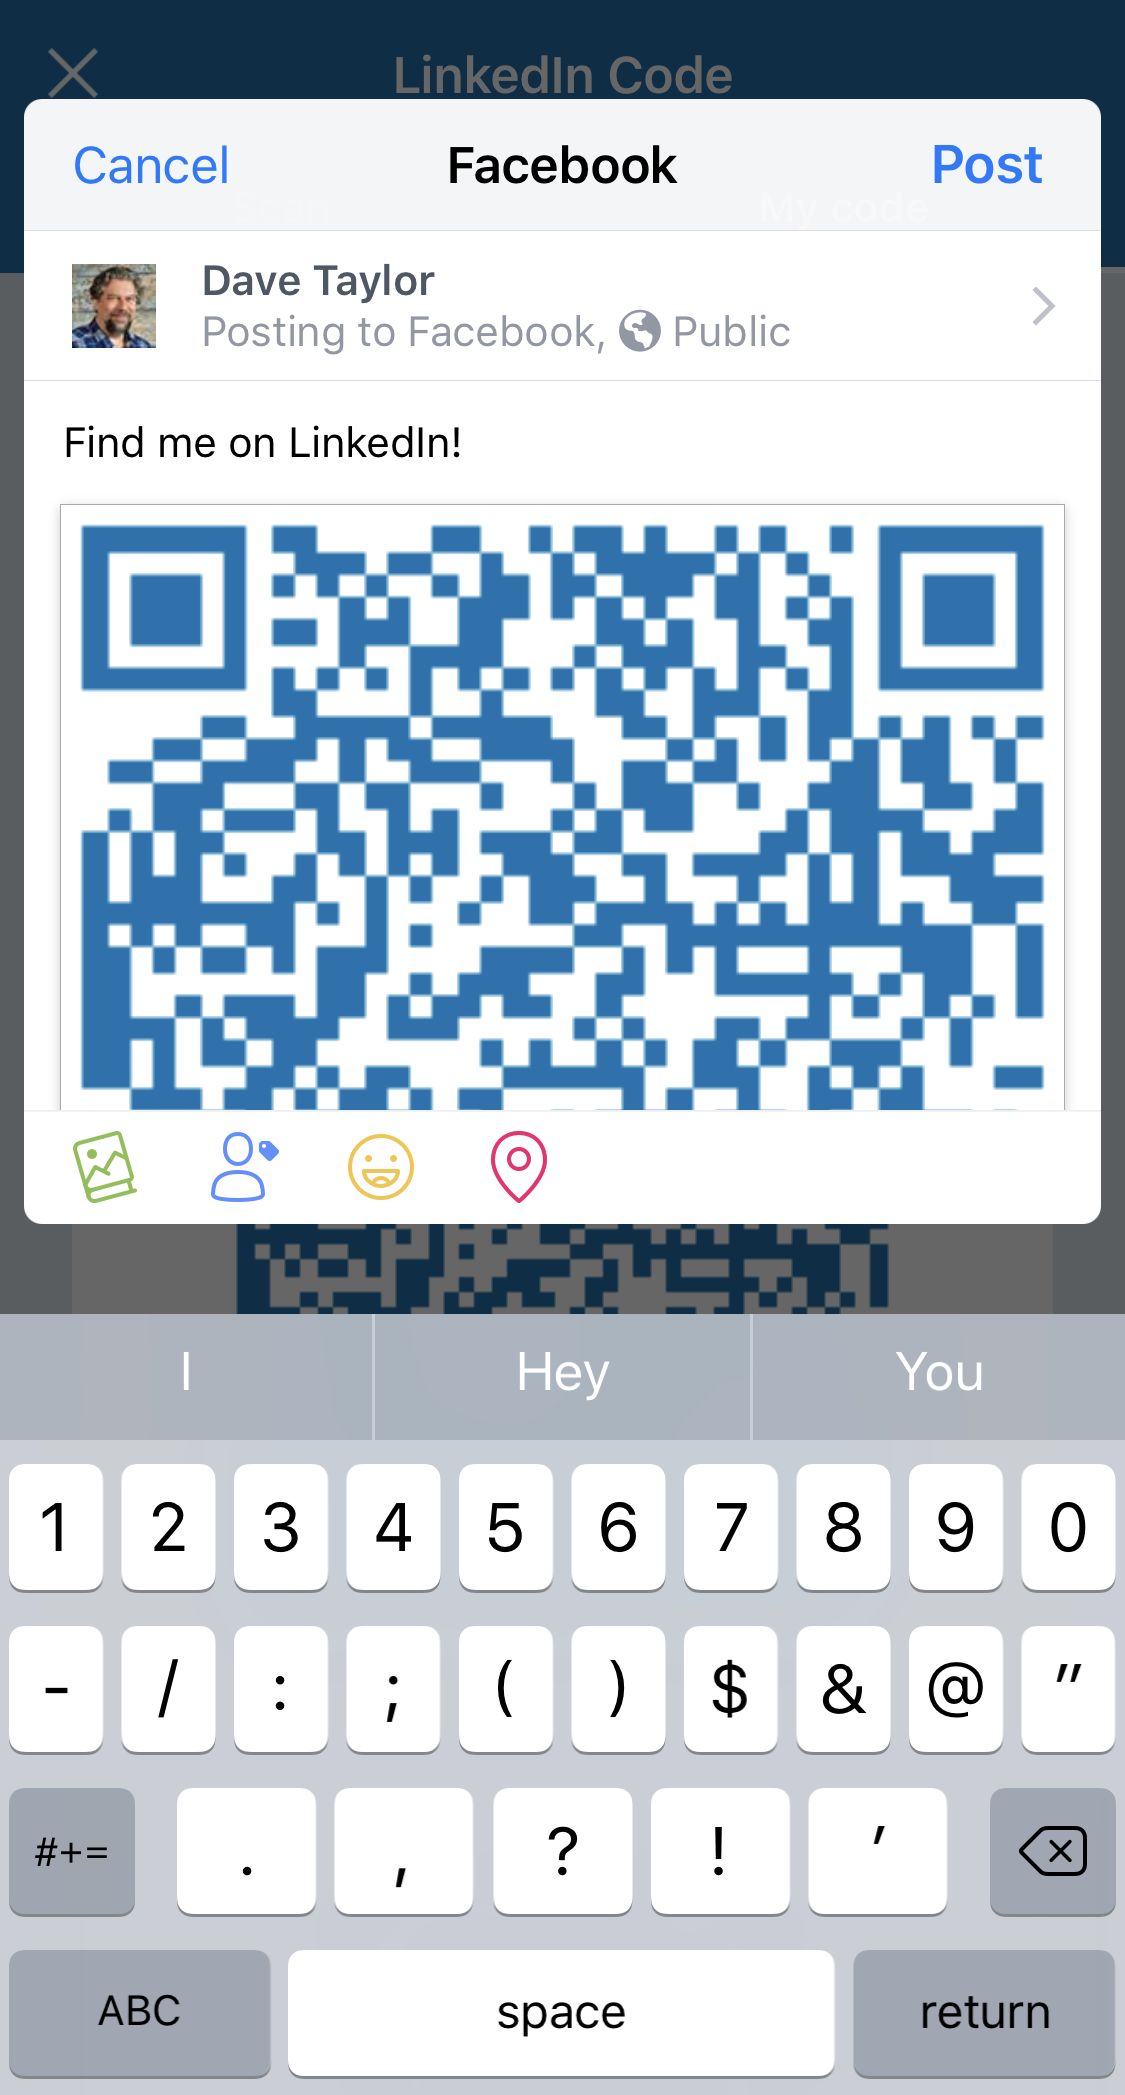 sharing LinkedIn Code QR on Facebook from iphone